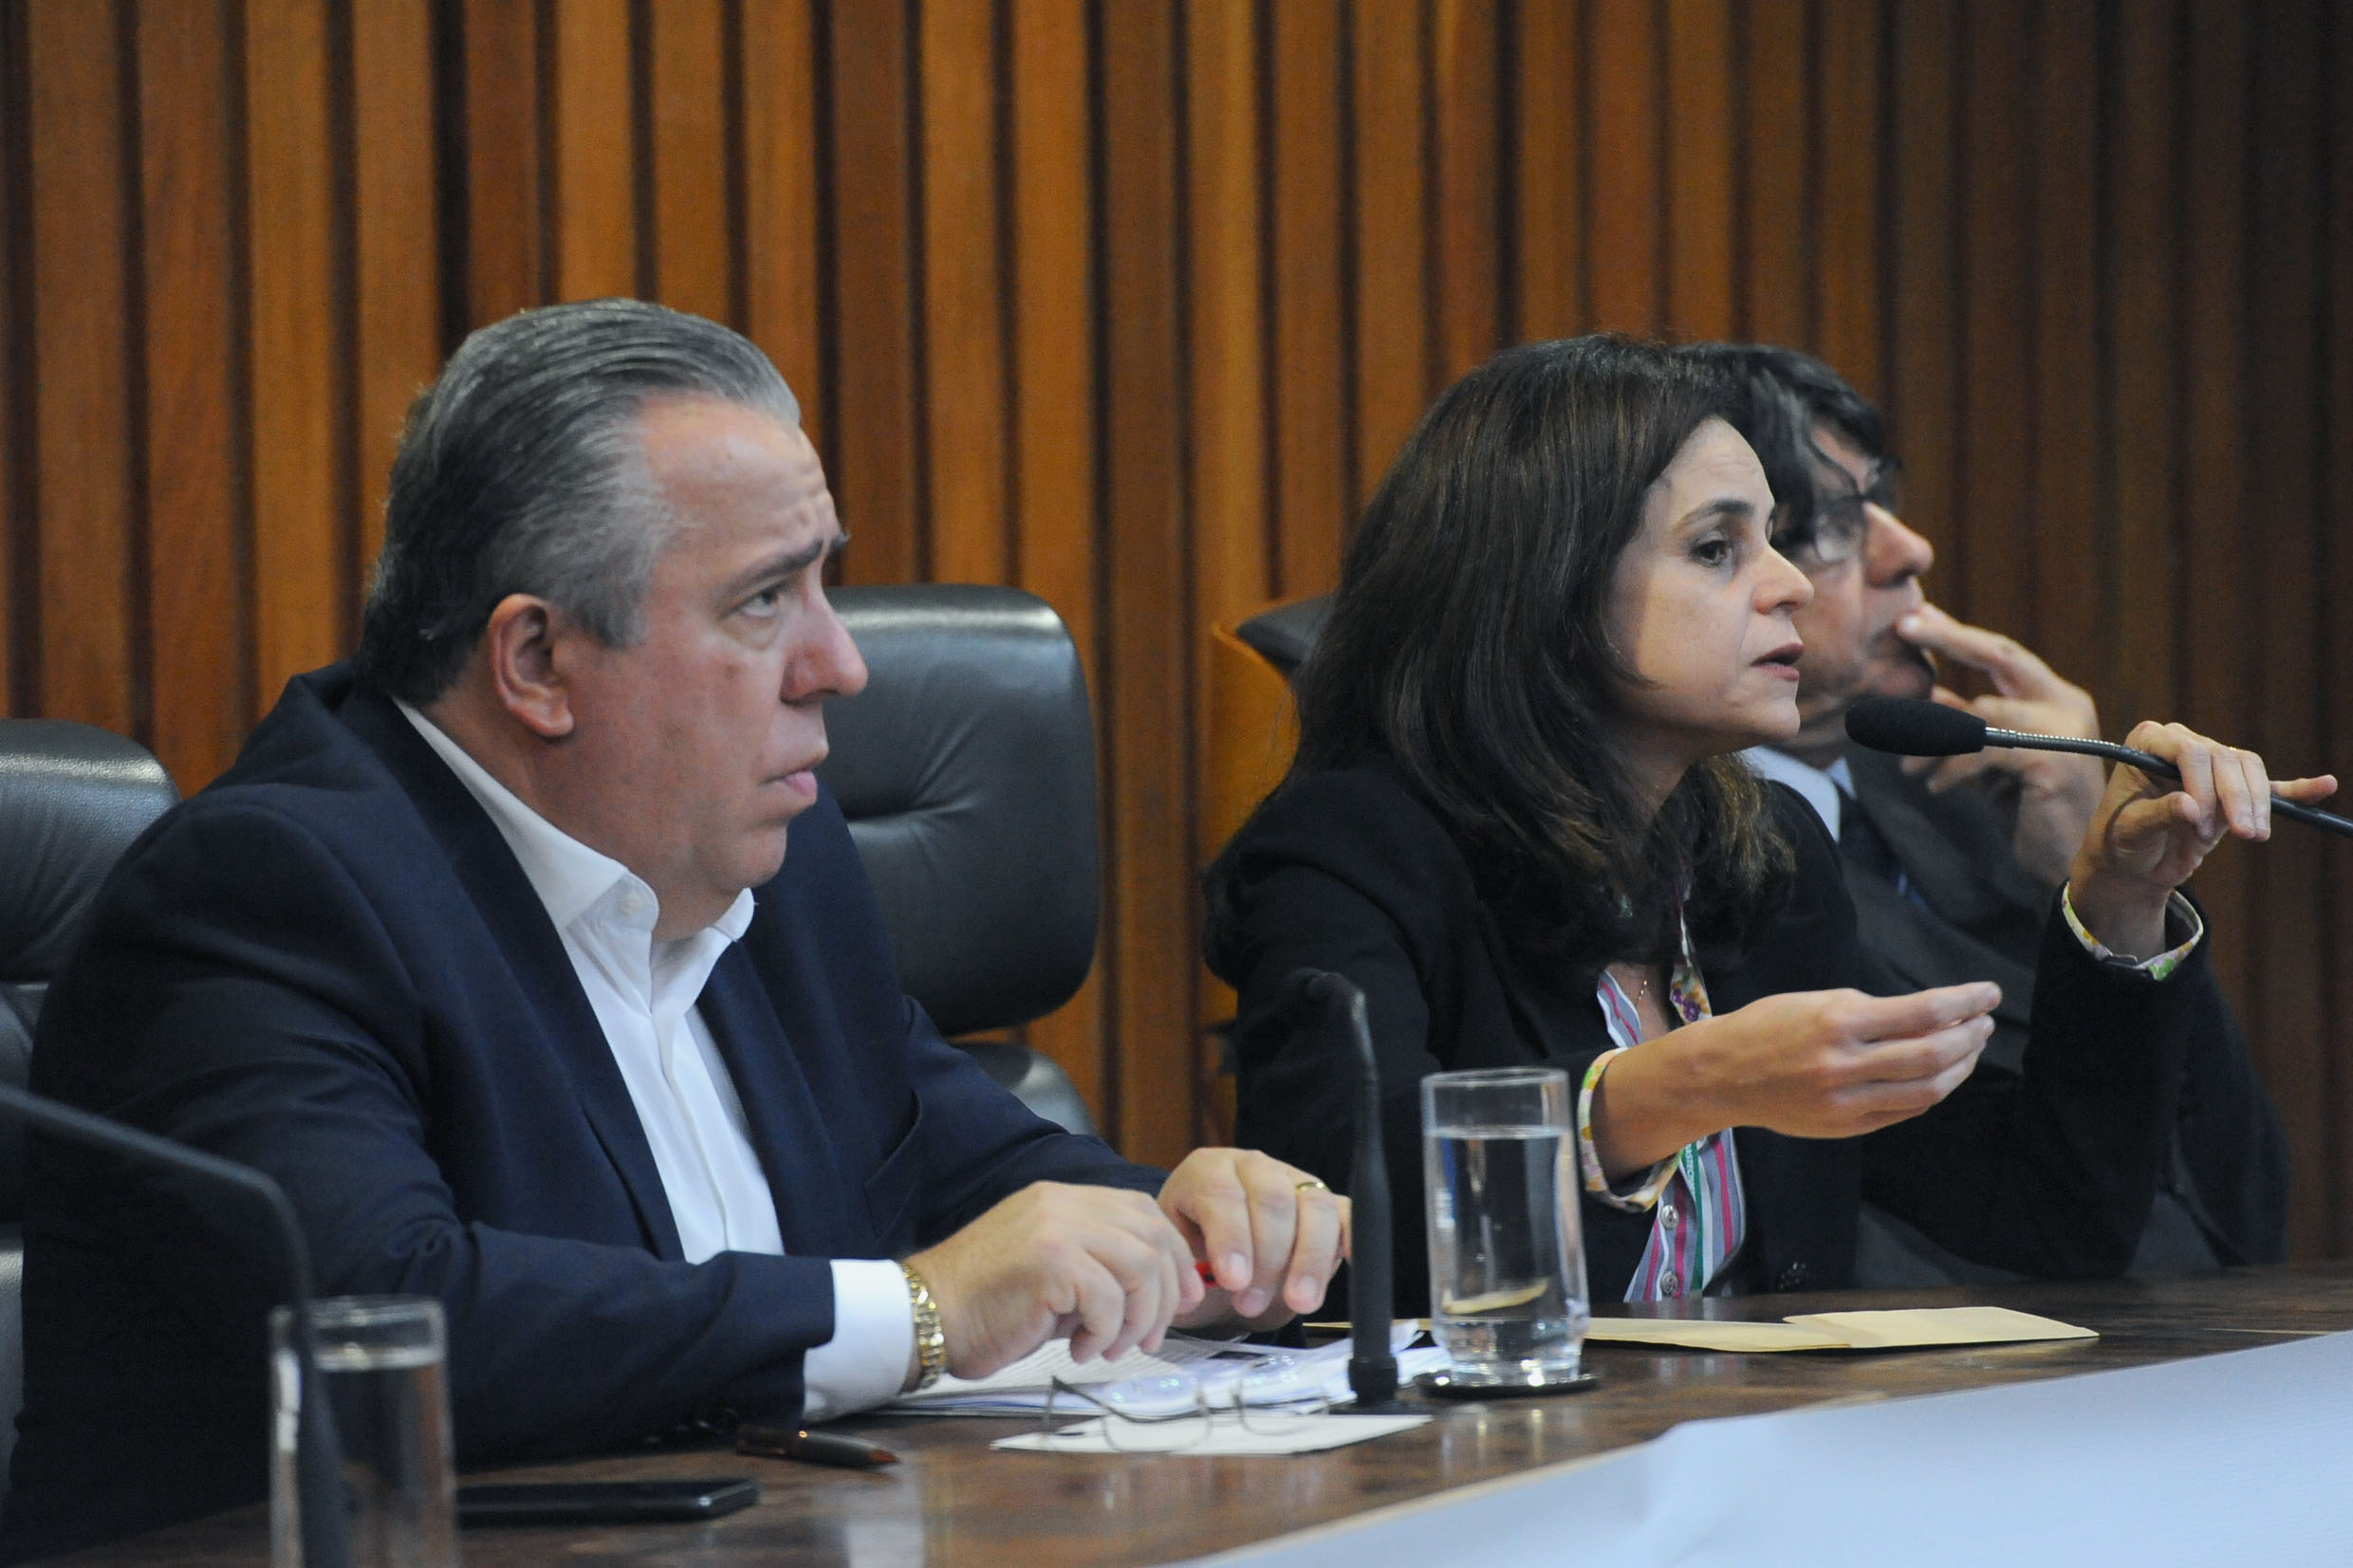 Adilson Rossi e Juliana do Amaral<a style='float:right' href='https://www3.al.sp.gov.br/repositorio/noticia/N-06-2018/fg224362.jpg' target=_blank><img src='/_img/material-file-download-white.png' width='14px' alt='Clique para baixar a imagem'></a>